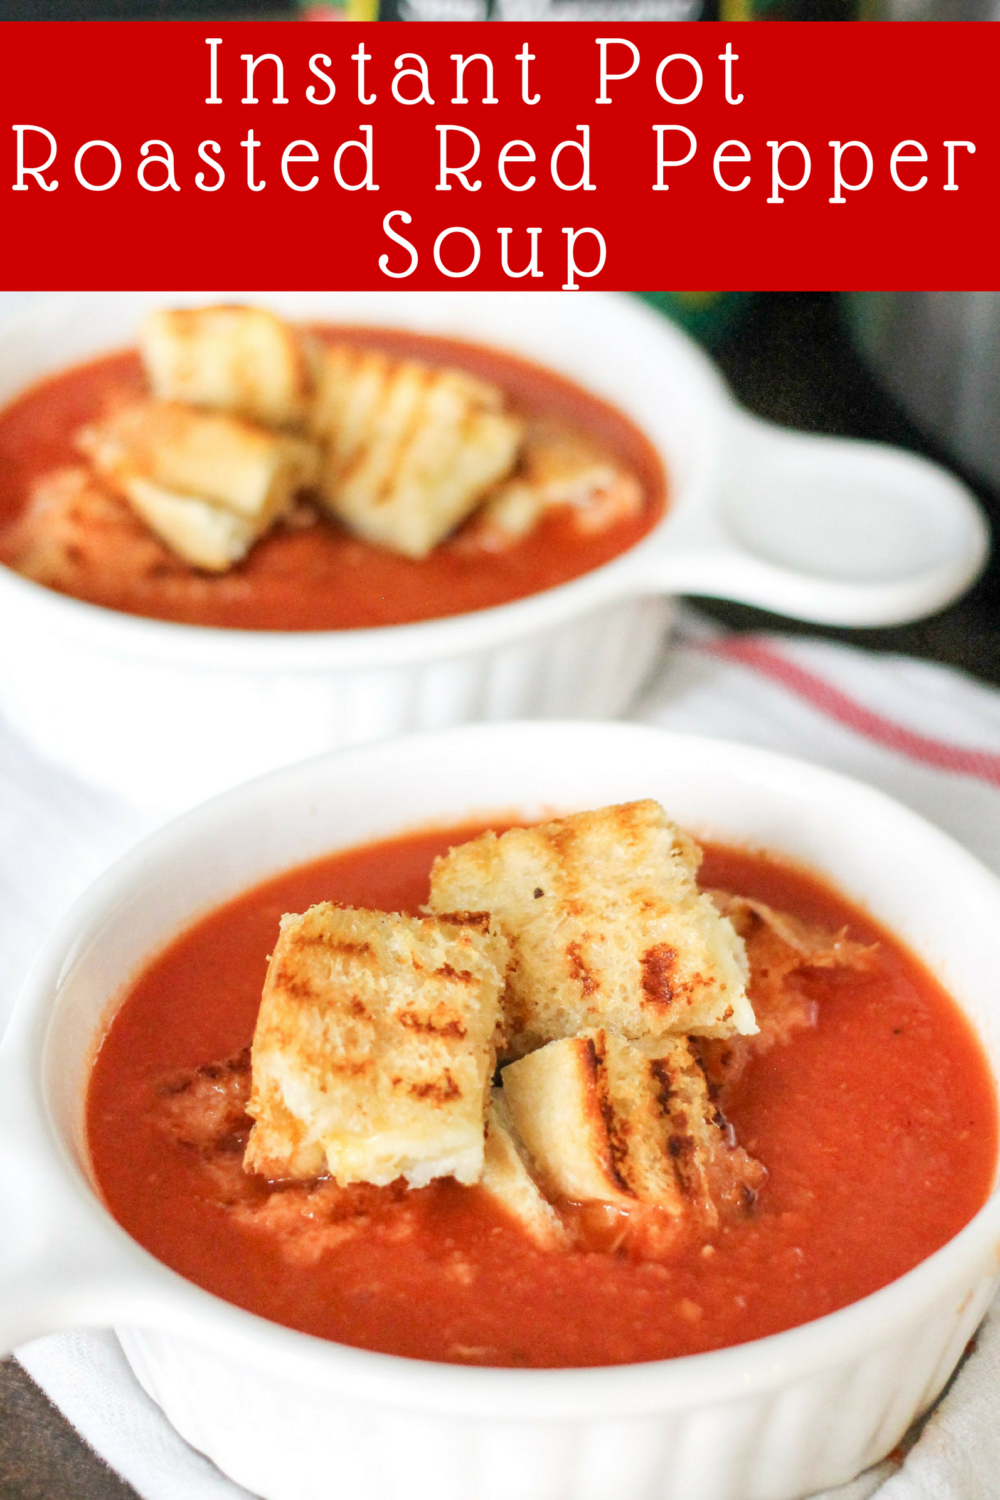 Roasted Red Pepper Soup with Grilled Cheese Croutons is the perfect comfort food without any guilt! Make it in the Instant Pot, Slow Cooker, or on the stove top!